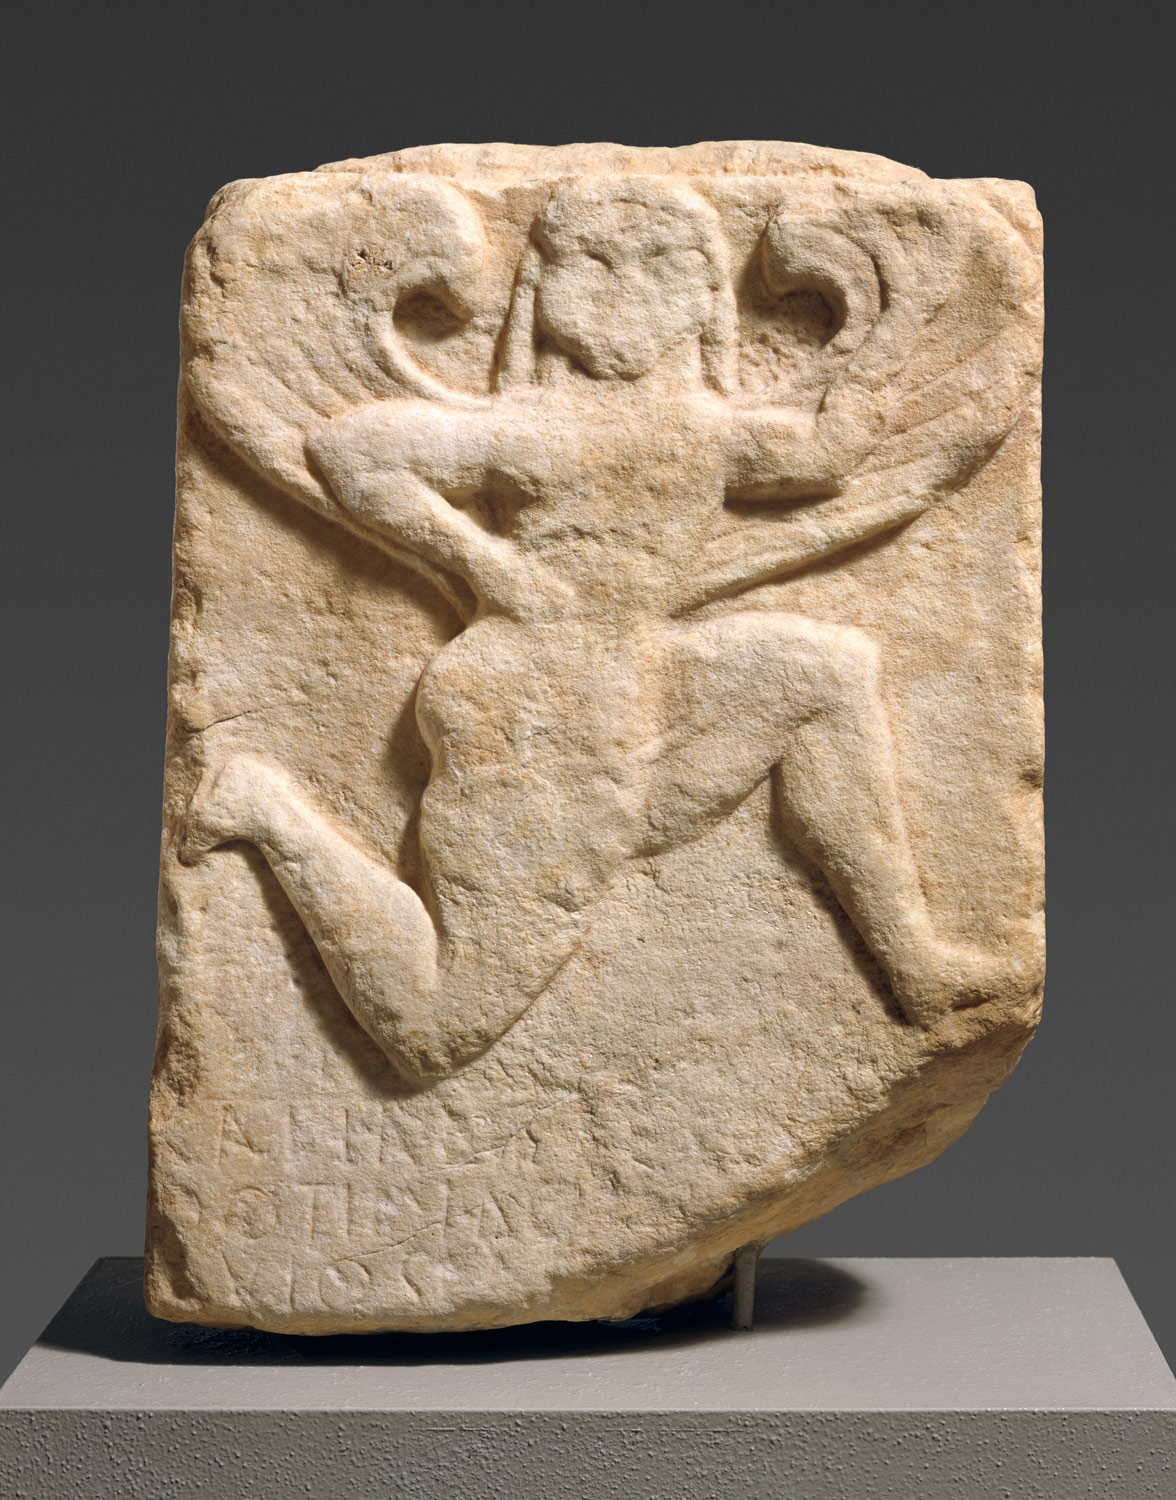 Part of the marble stele (grave marker) of Kalliades | Work